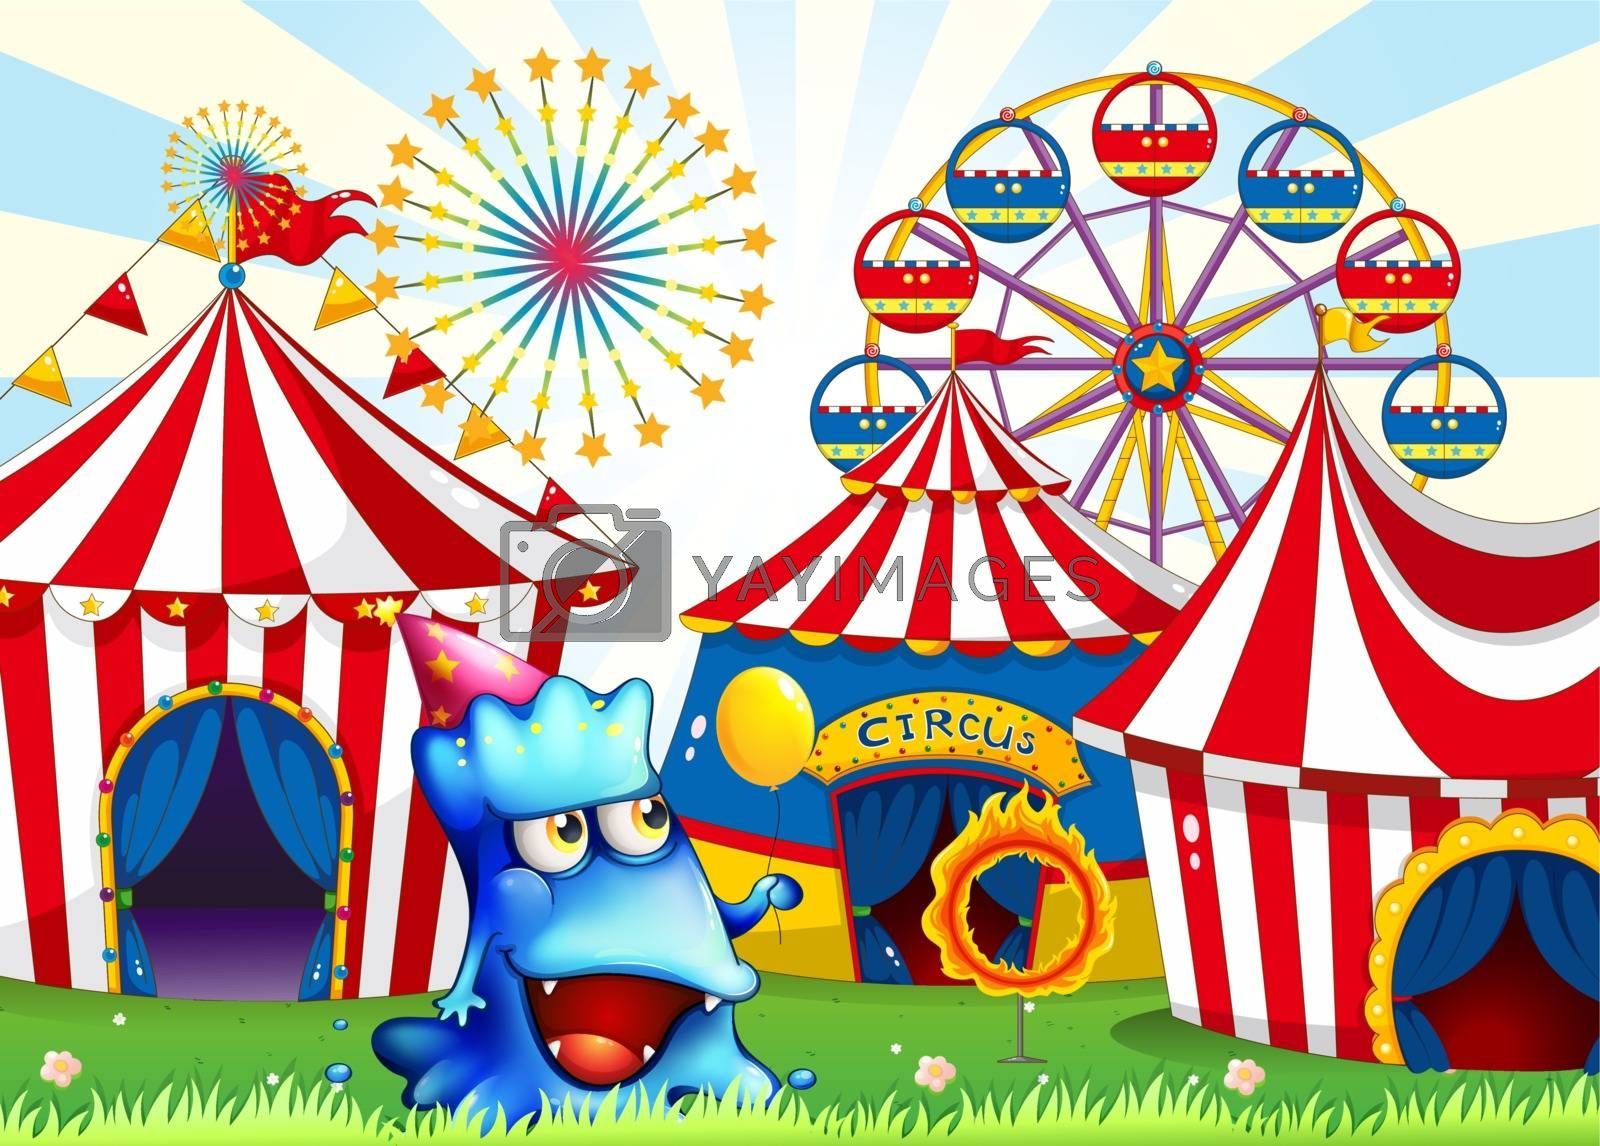 Royalty free image of A blue monster near the circus tents by iimages